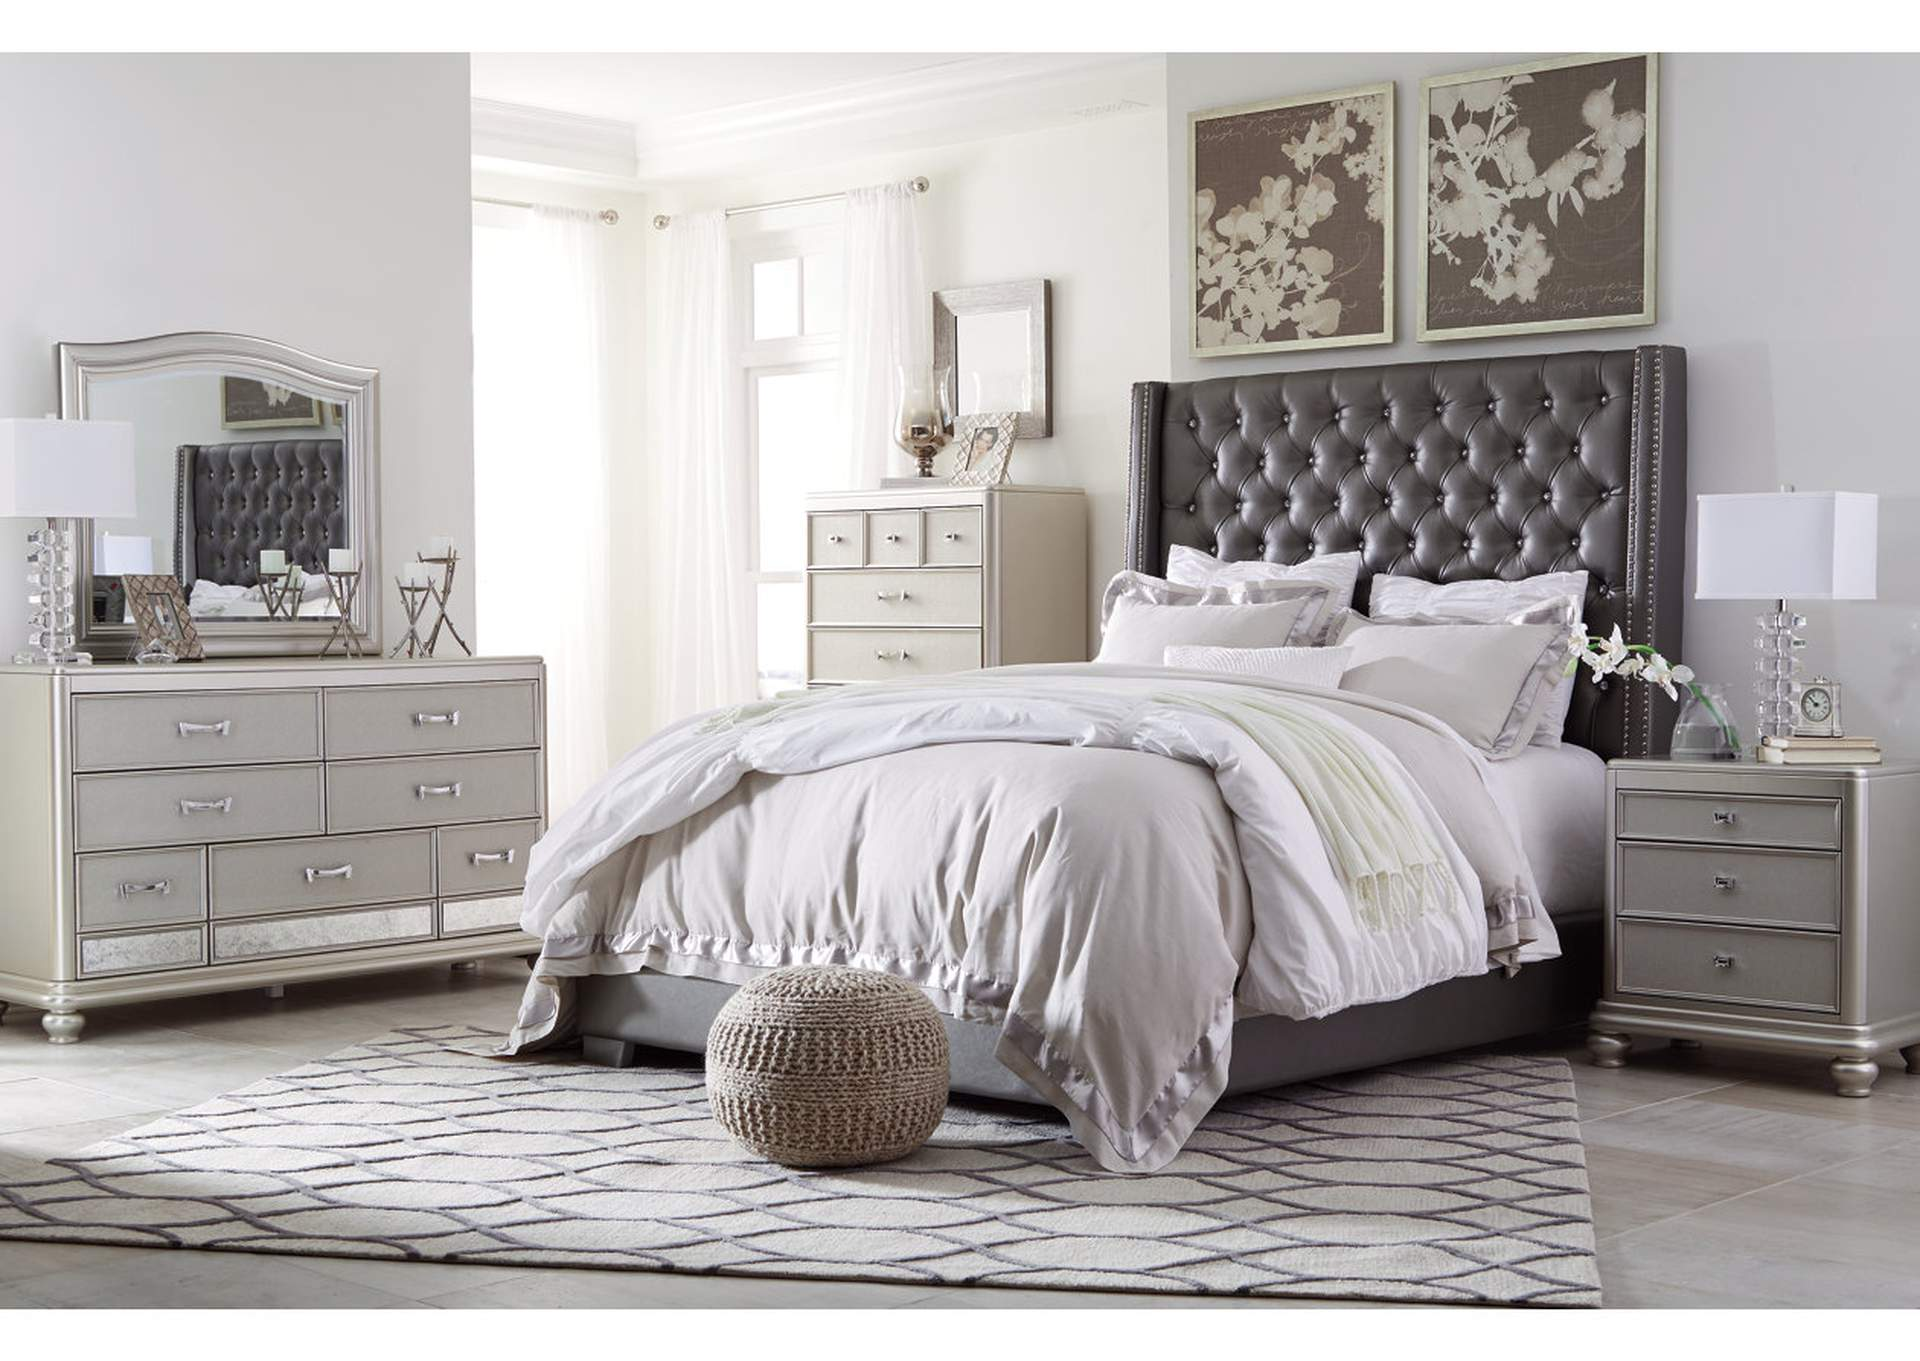 Coralayne Gray California King Upholstered Bed w/Dresser, Mirror, Drawer Chest & Nightstand,Signature Design By Ashley